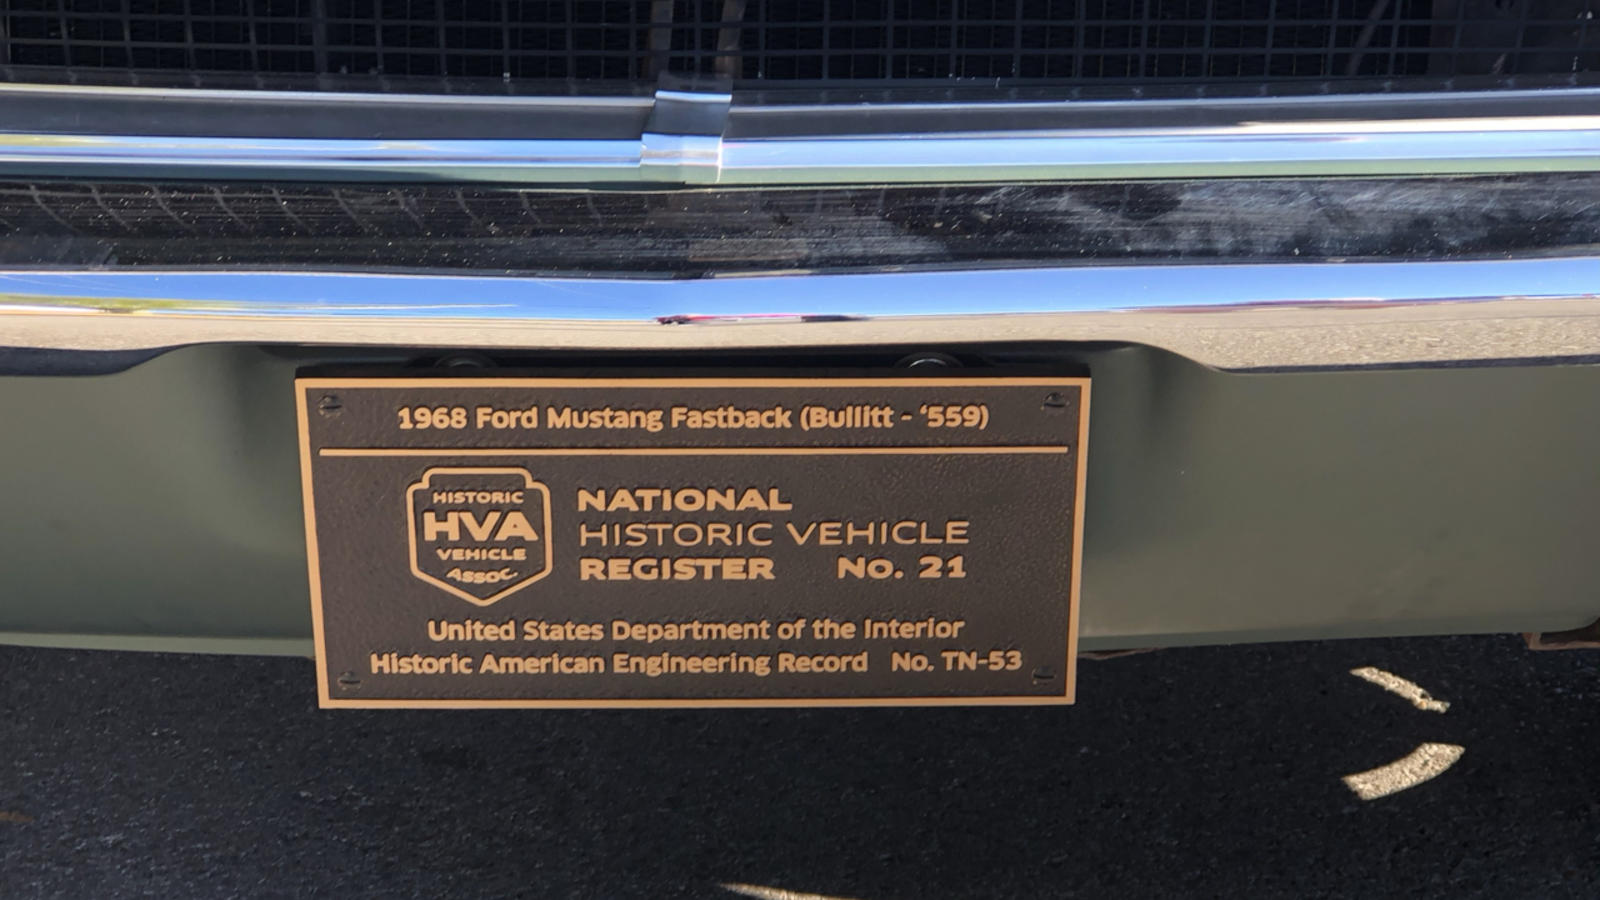 The historical marker certifies the actual 1968 Mustang Driven by Steve McQueen in the movie Bullitt